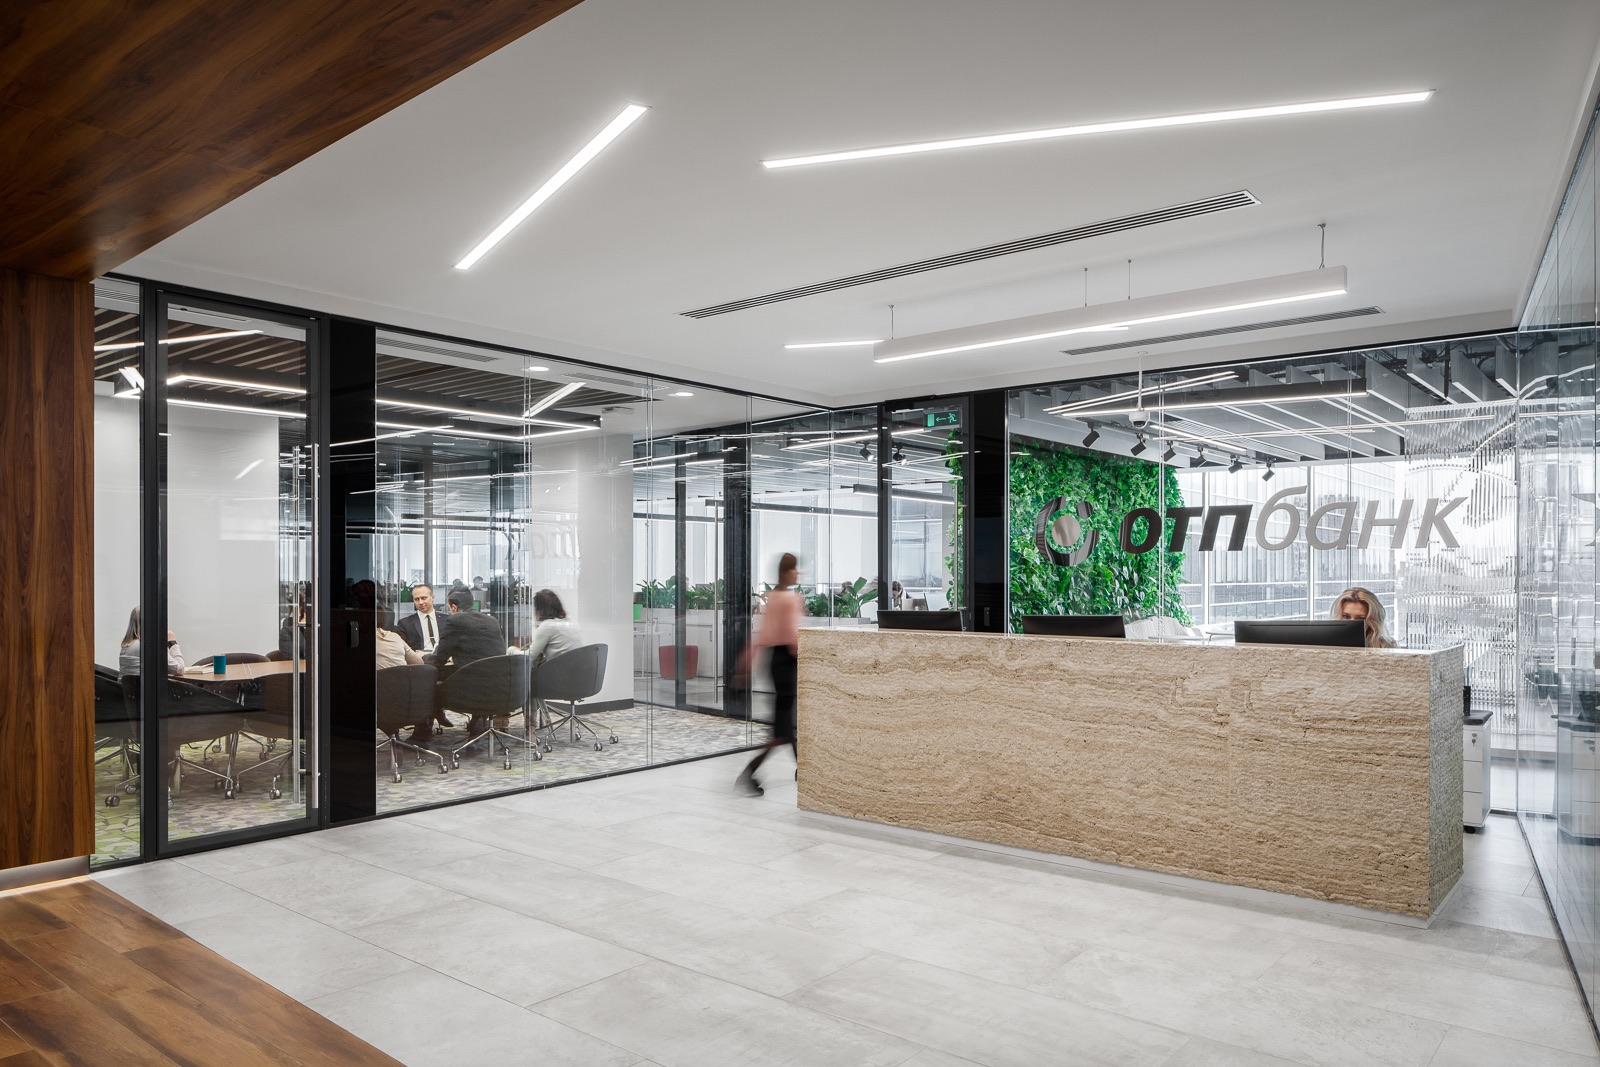 A Tour of OTP Bank's Modern Moscow Office